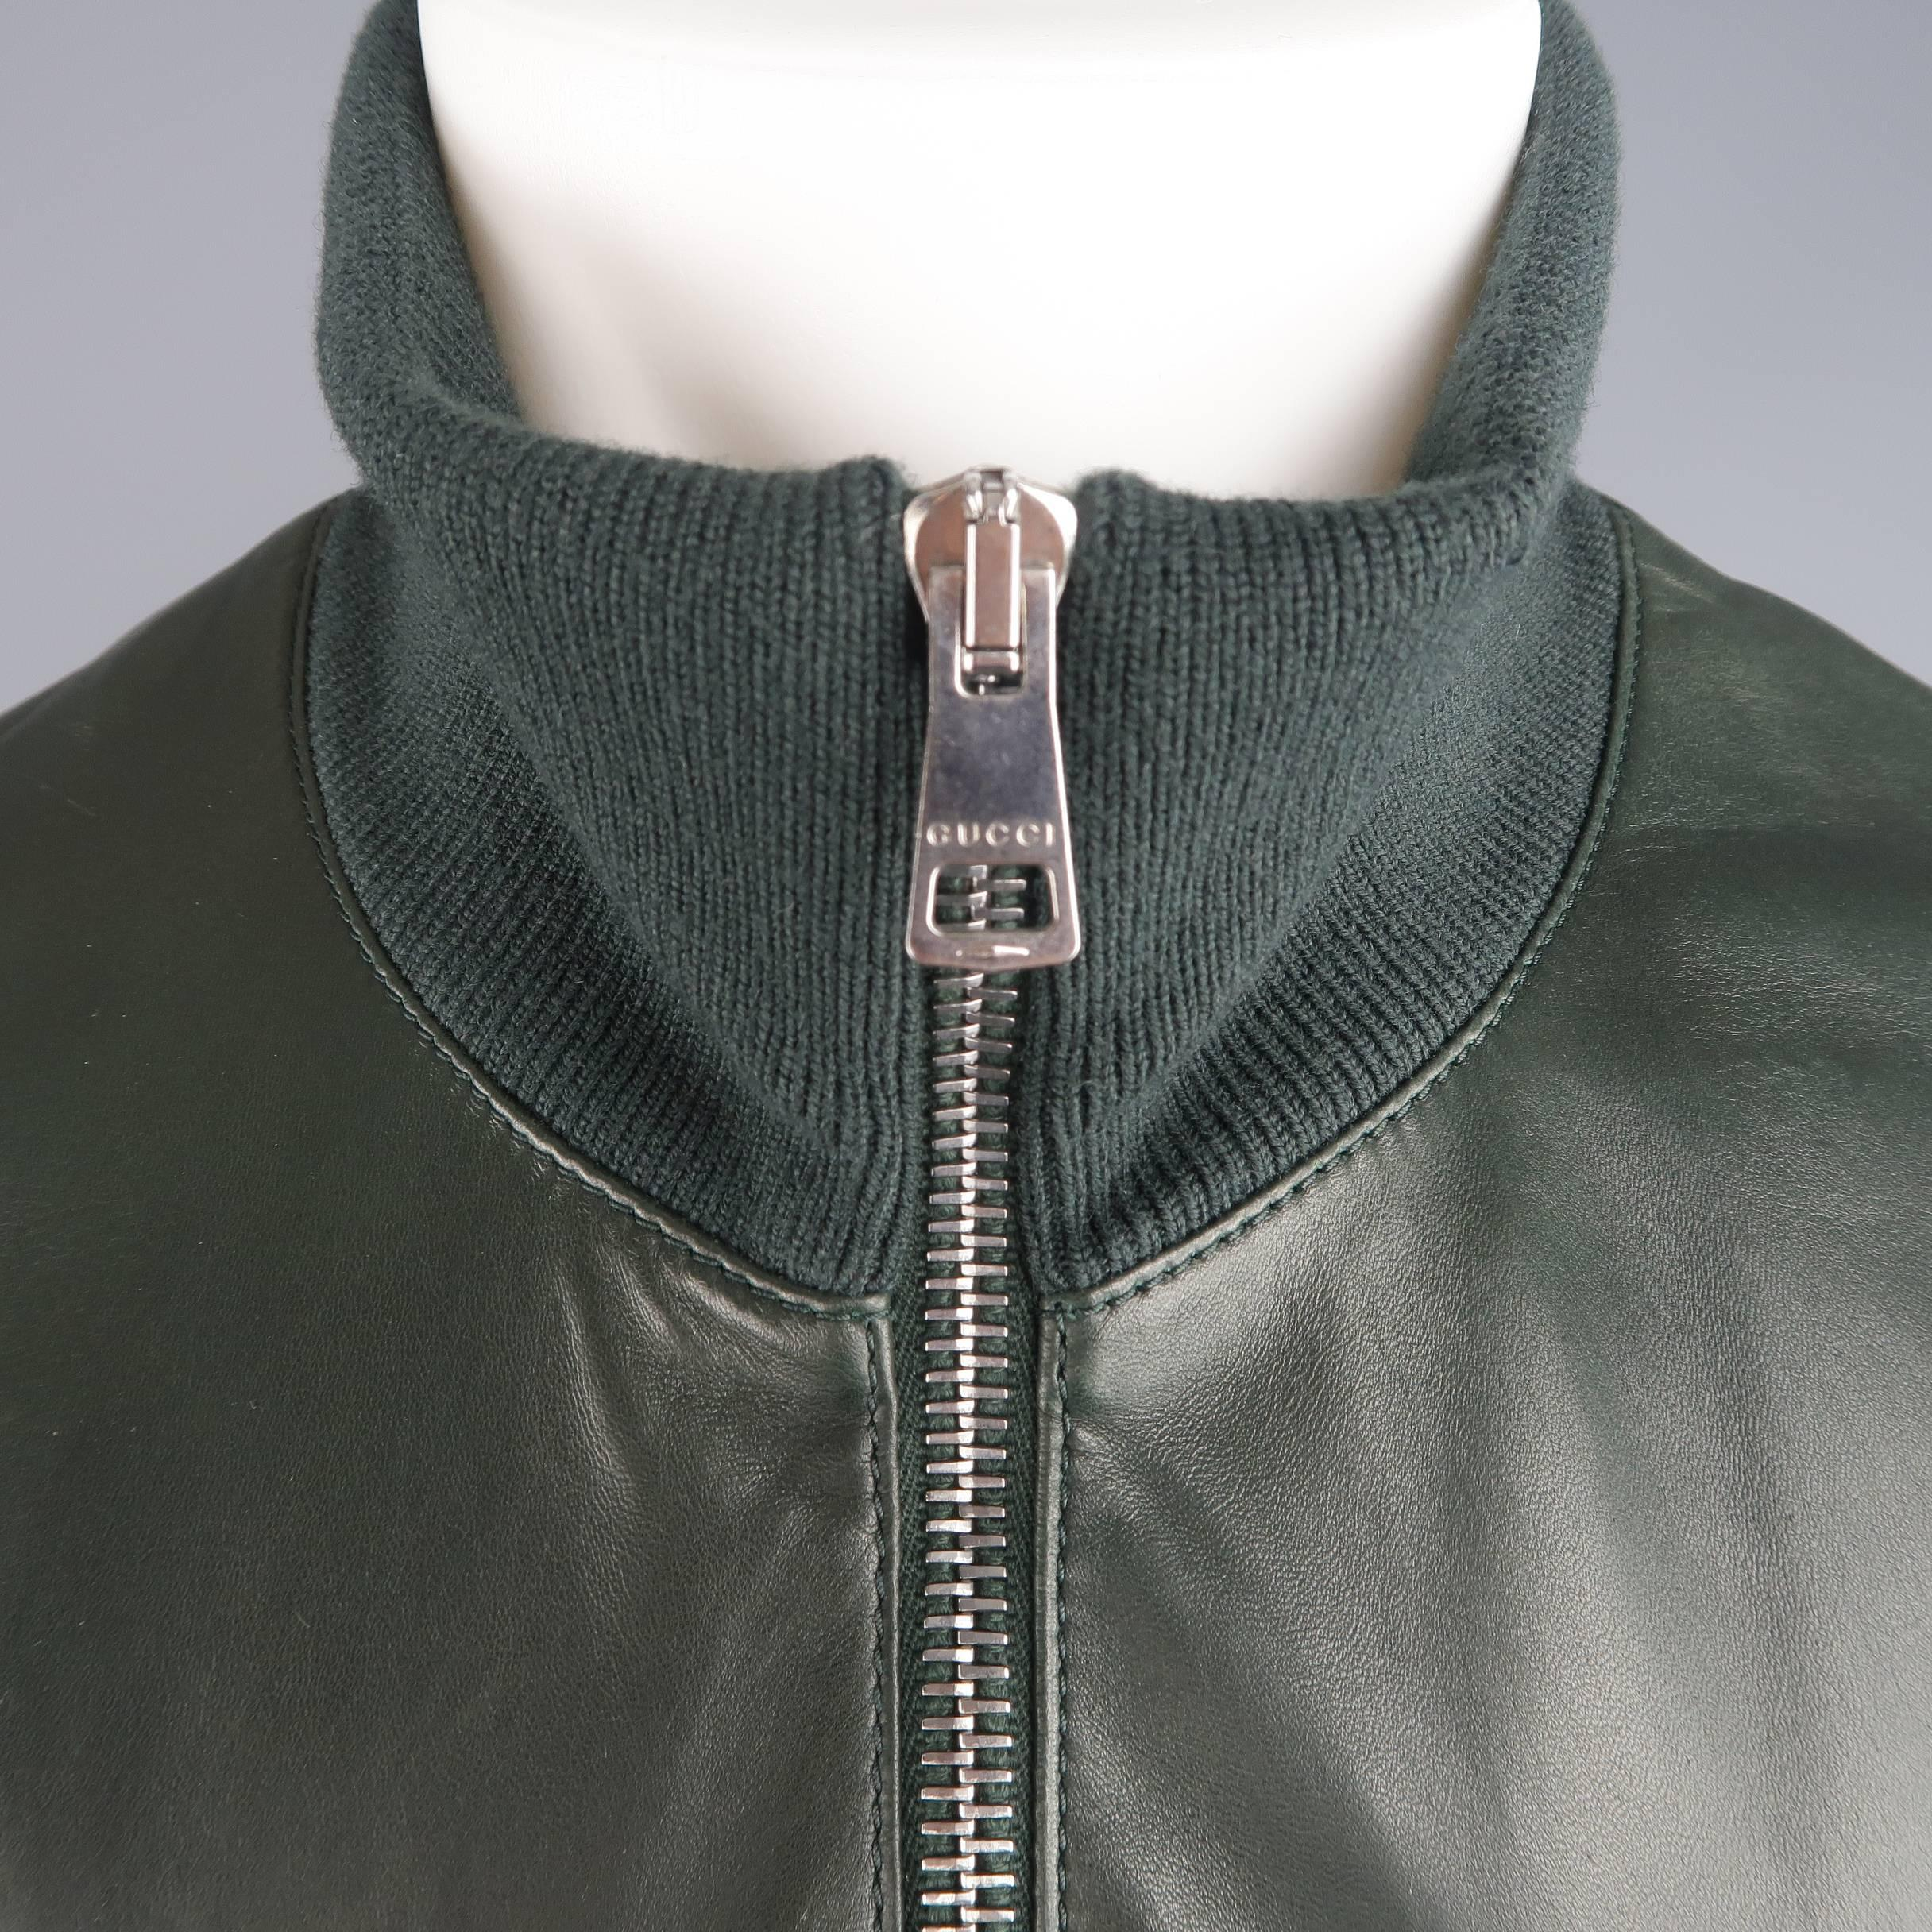 87d78d796 Gucci Men's Forest Green Leather Striped Collar Bomber Jacket at 1stdibs